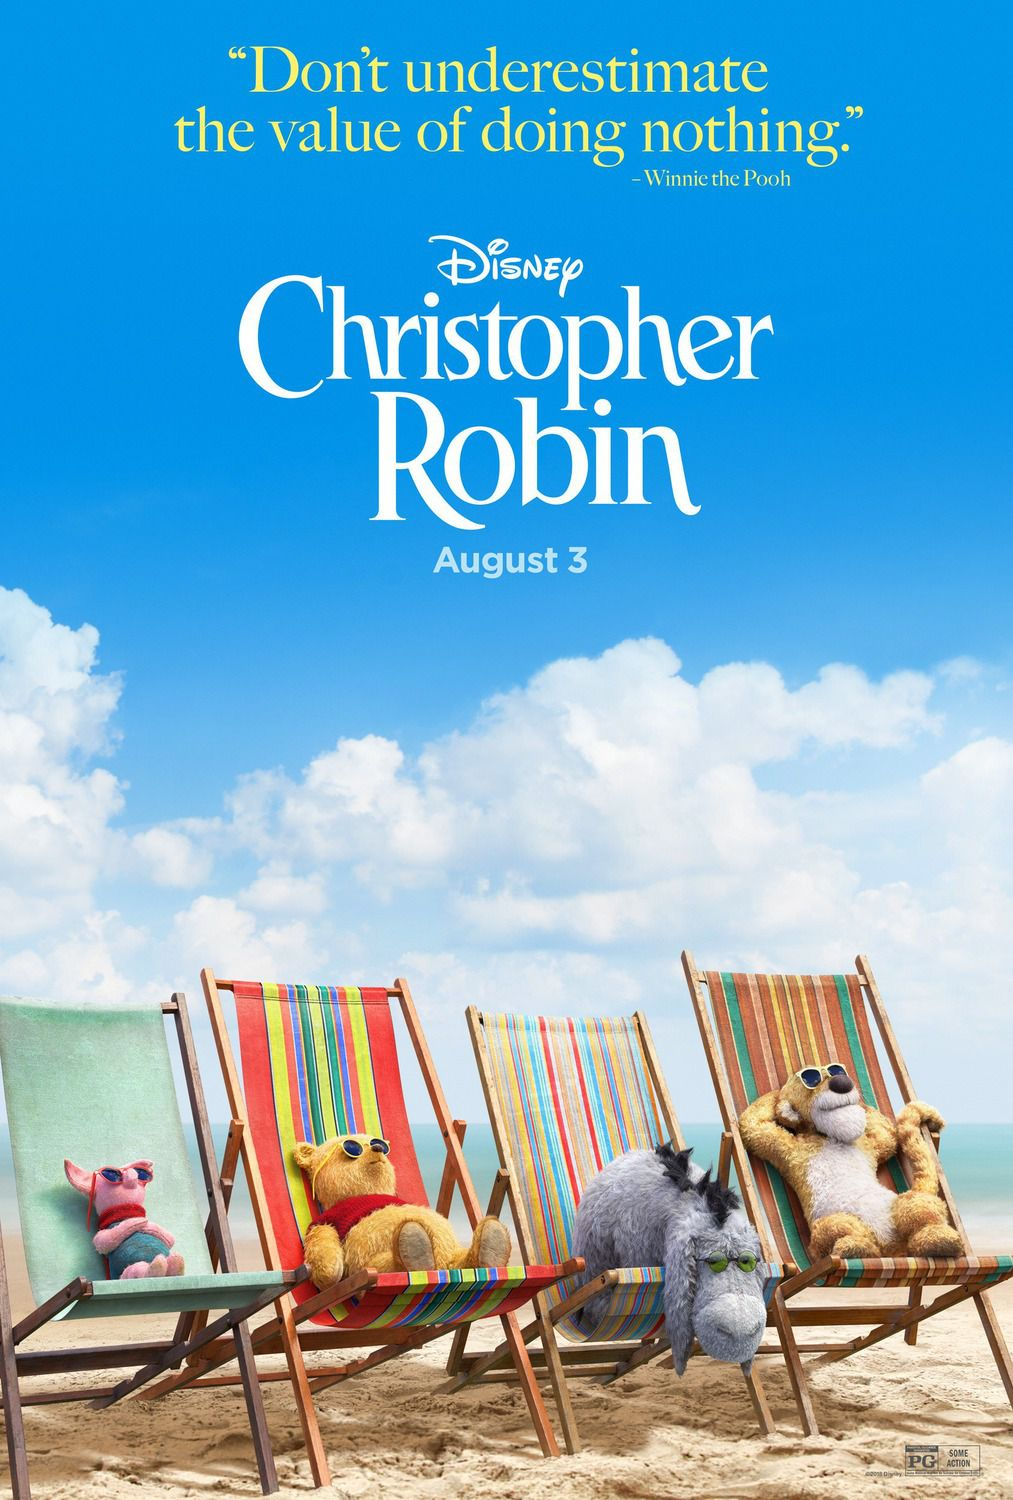 Christopher Robin (2018) Cast: Ewan McGregor, Jim Cummings, Hayley Atwell, Bronte Carmichael - live action film poster